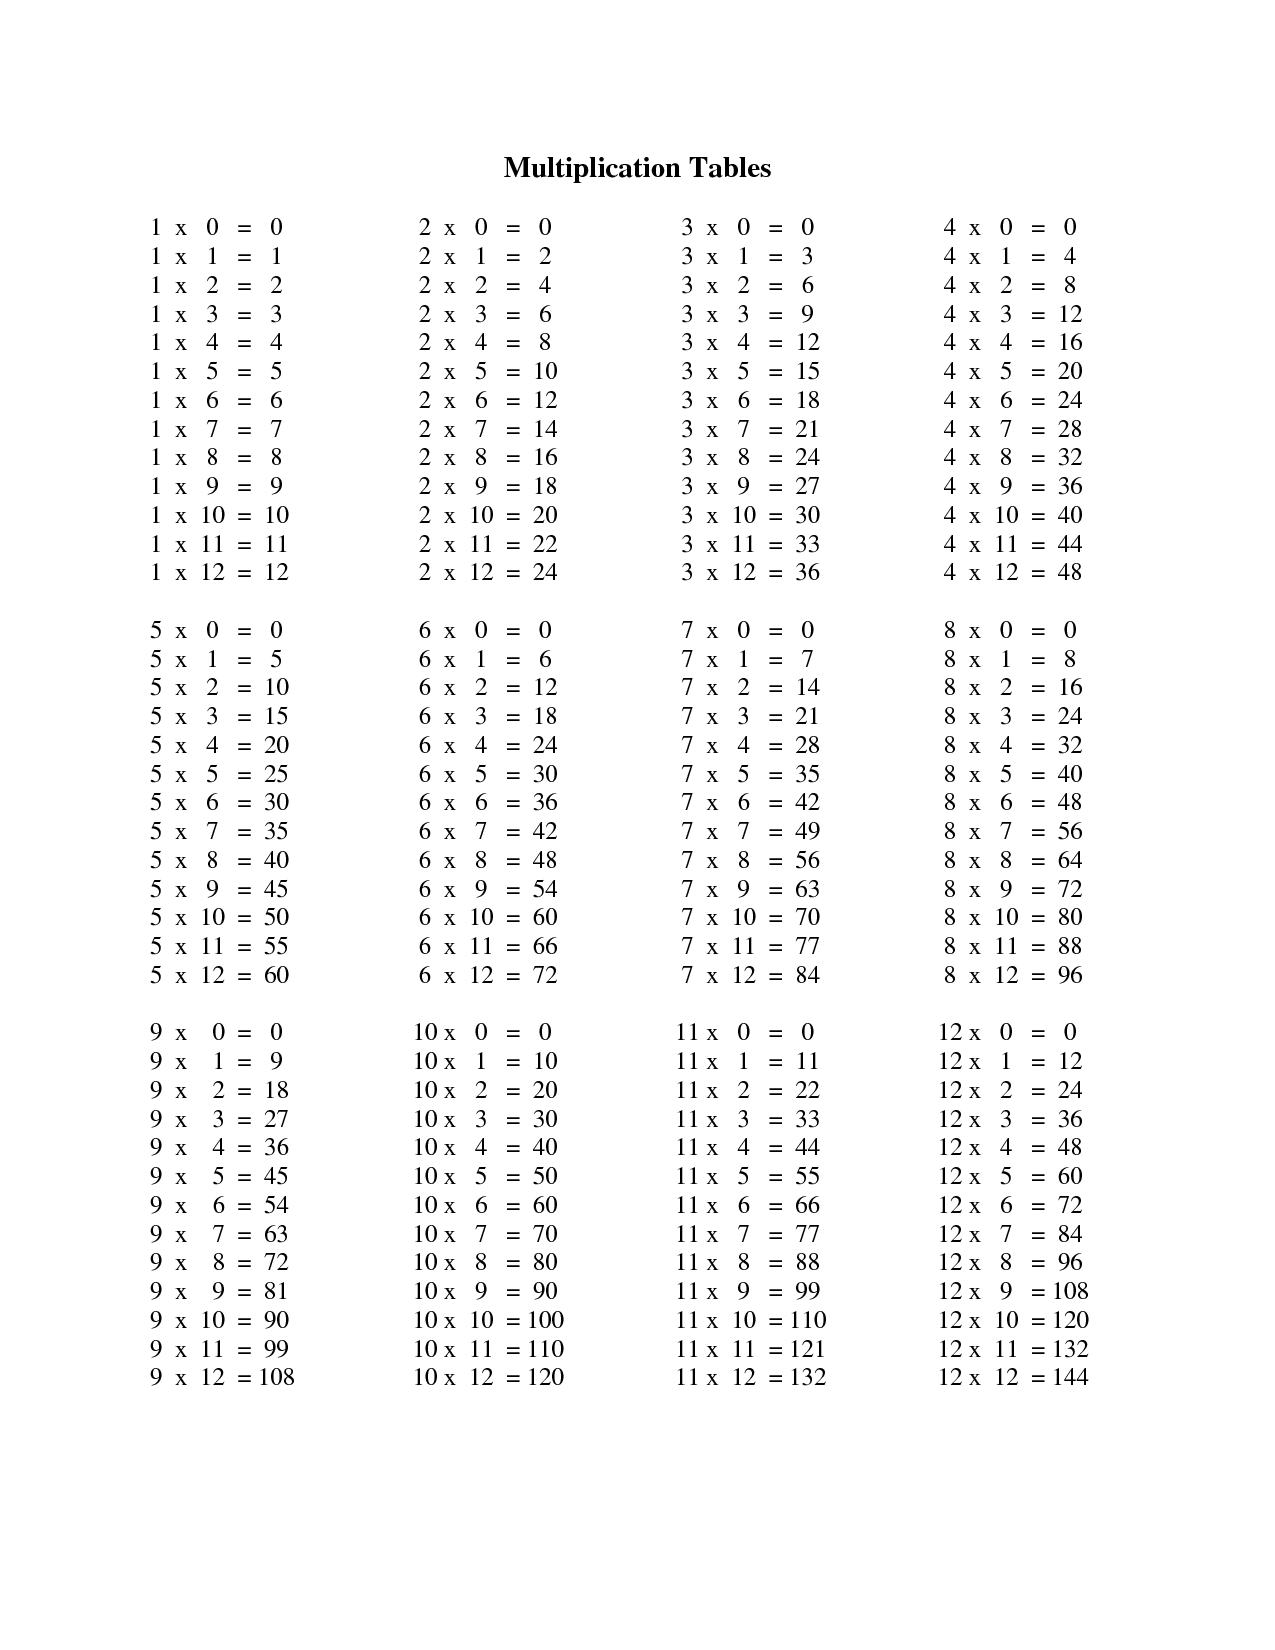 Printable blank multiplication table 1 12 multiplication for 1 12 multiplication table printable